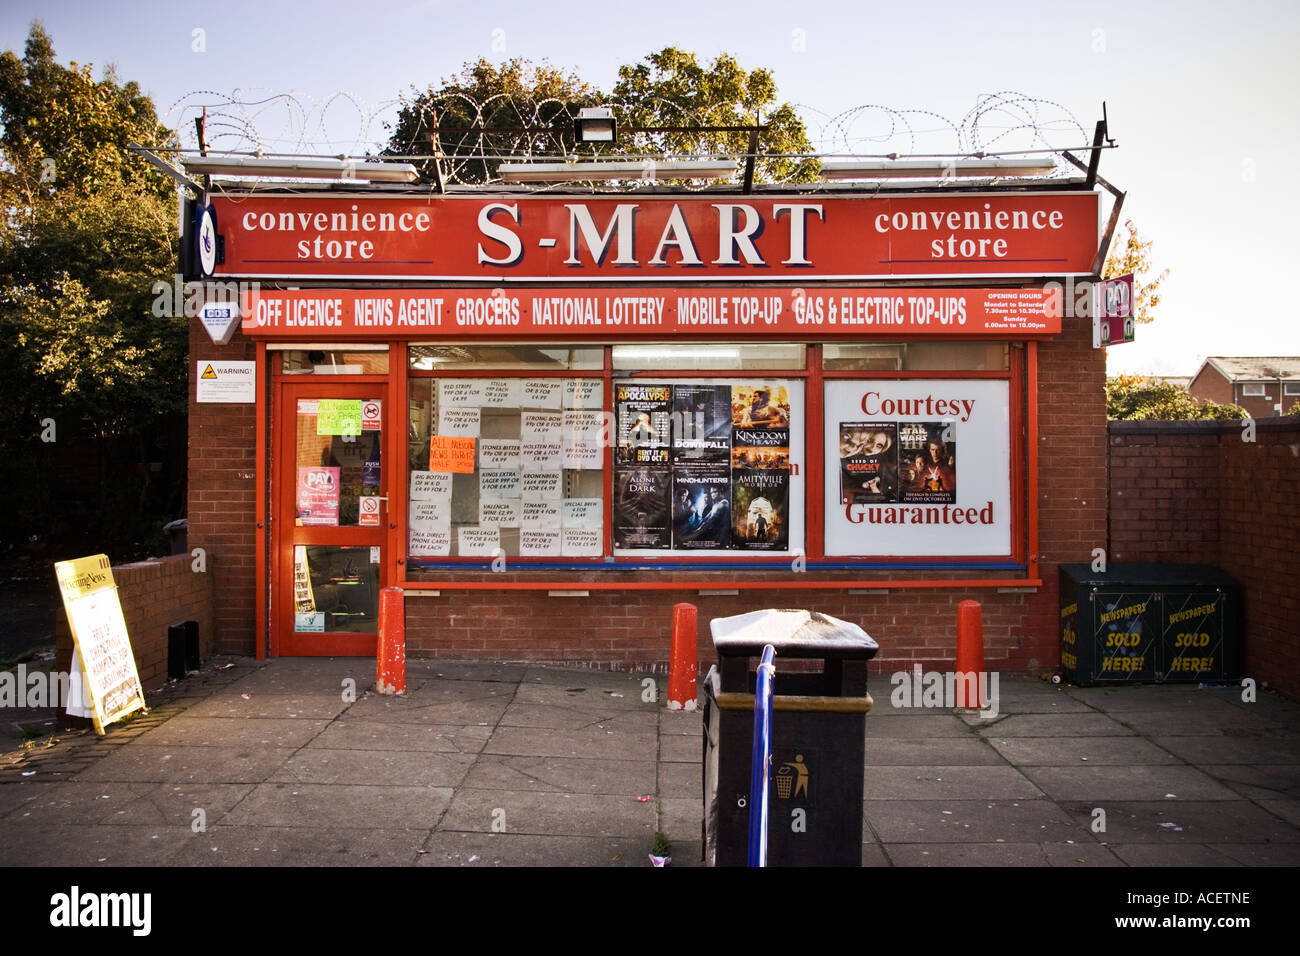 Inner city local corner shop convenience store with added security UK - Stock Image